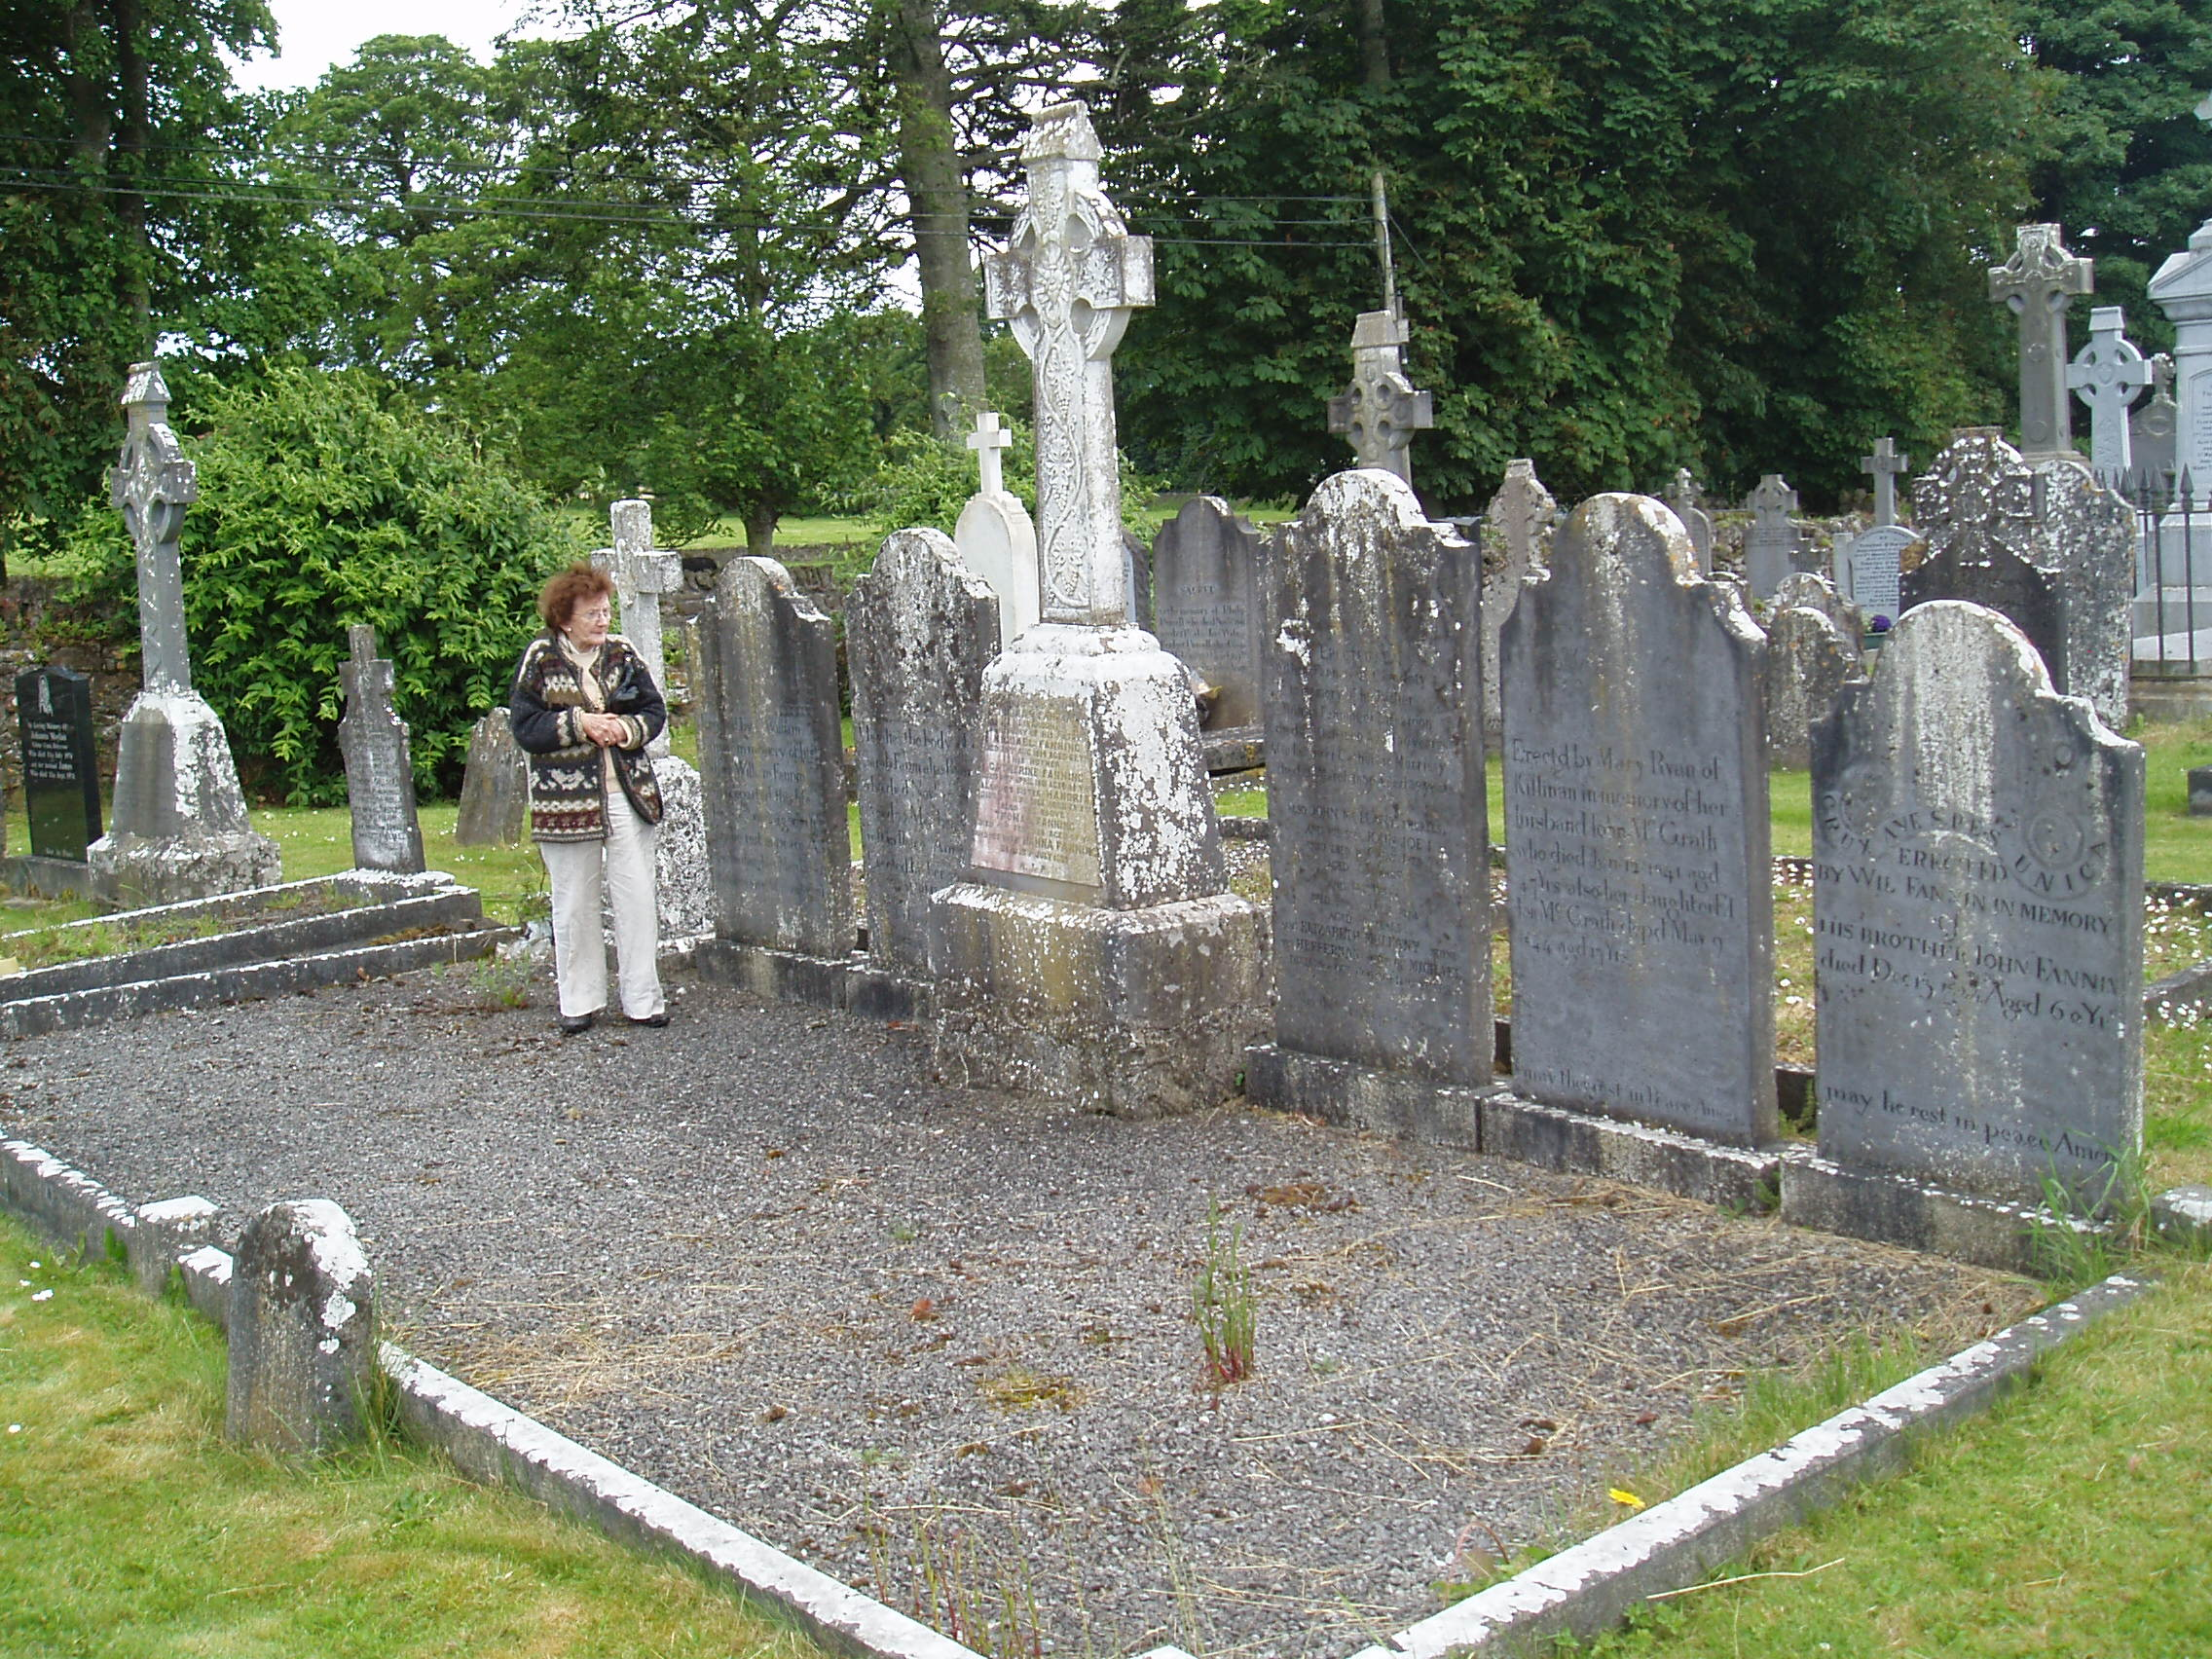 Delia Cullen nee Mullany in front of the Fanning Family Graves at Ballycahill Cemetery Co Tipperary Ireland June 2011